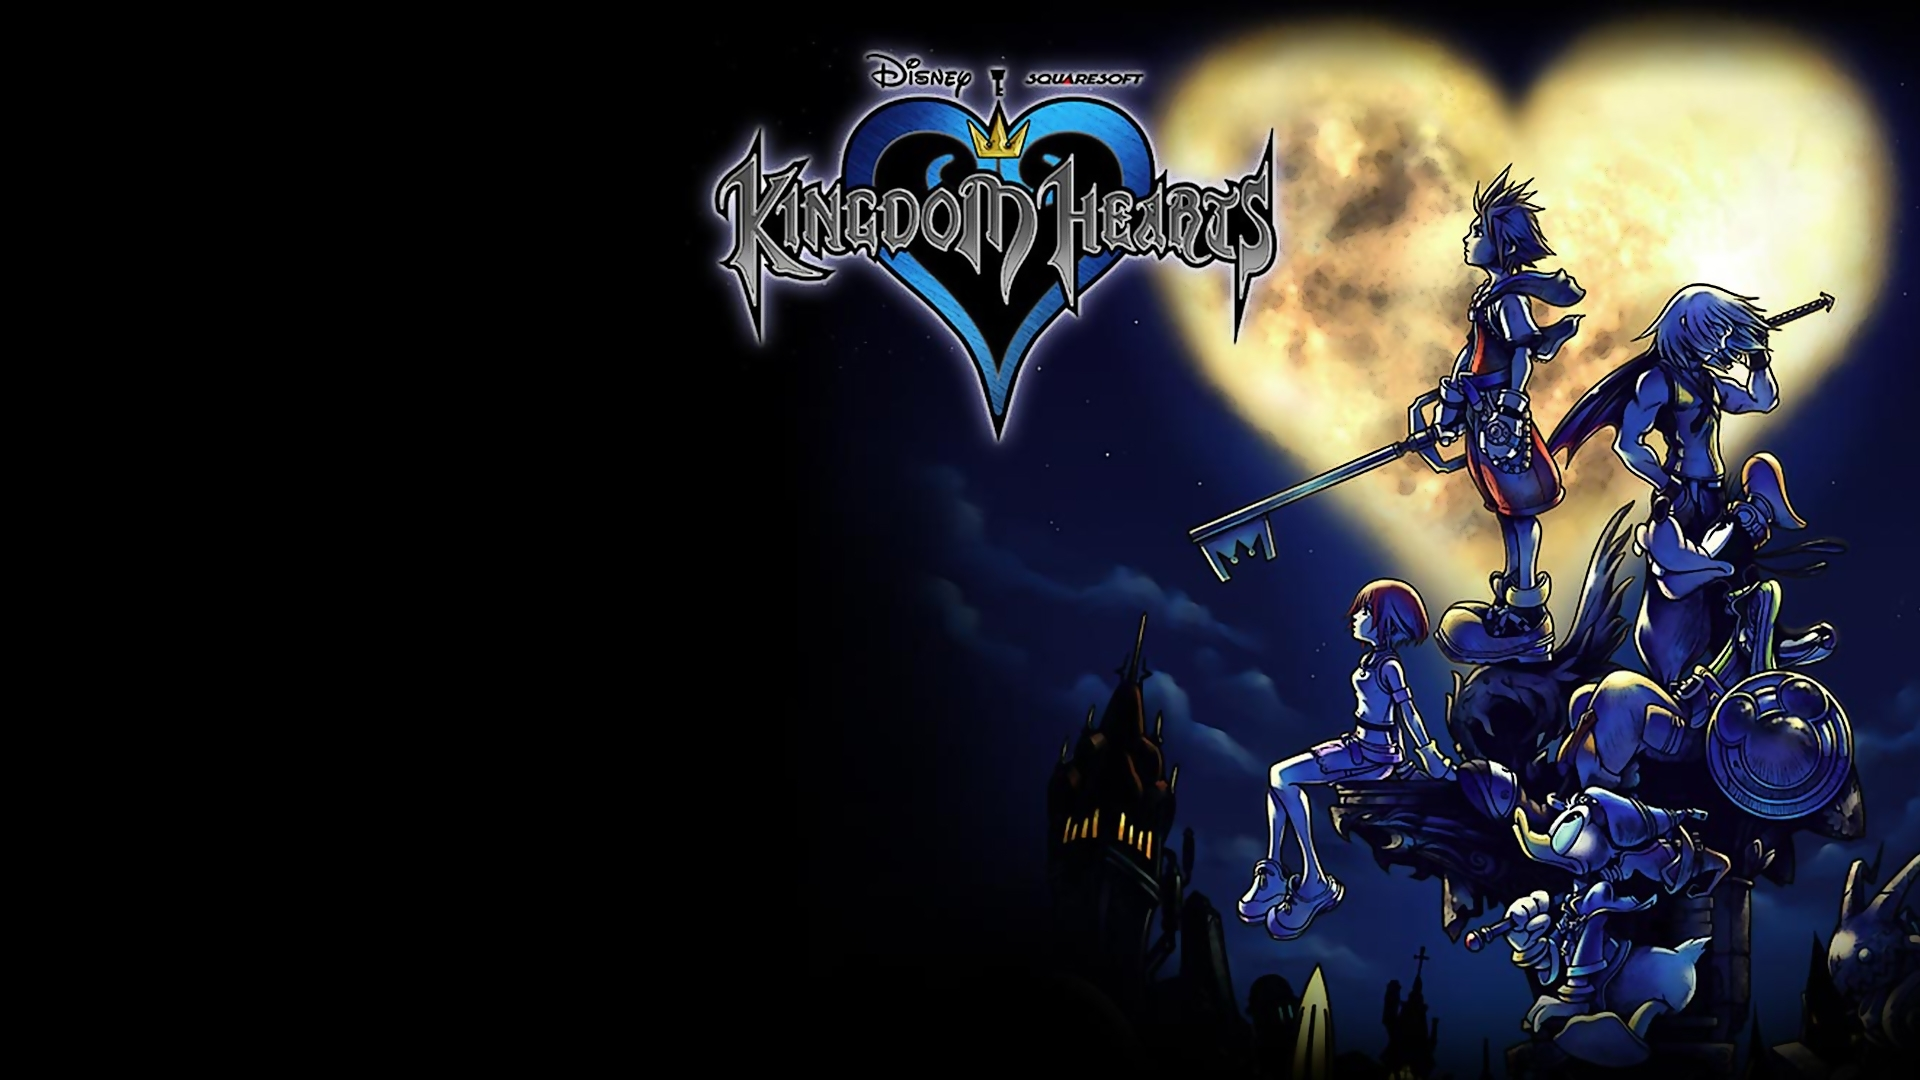 free kingdom hearts wallpaper hd resolution « long wallpapers